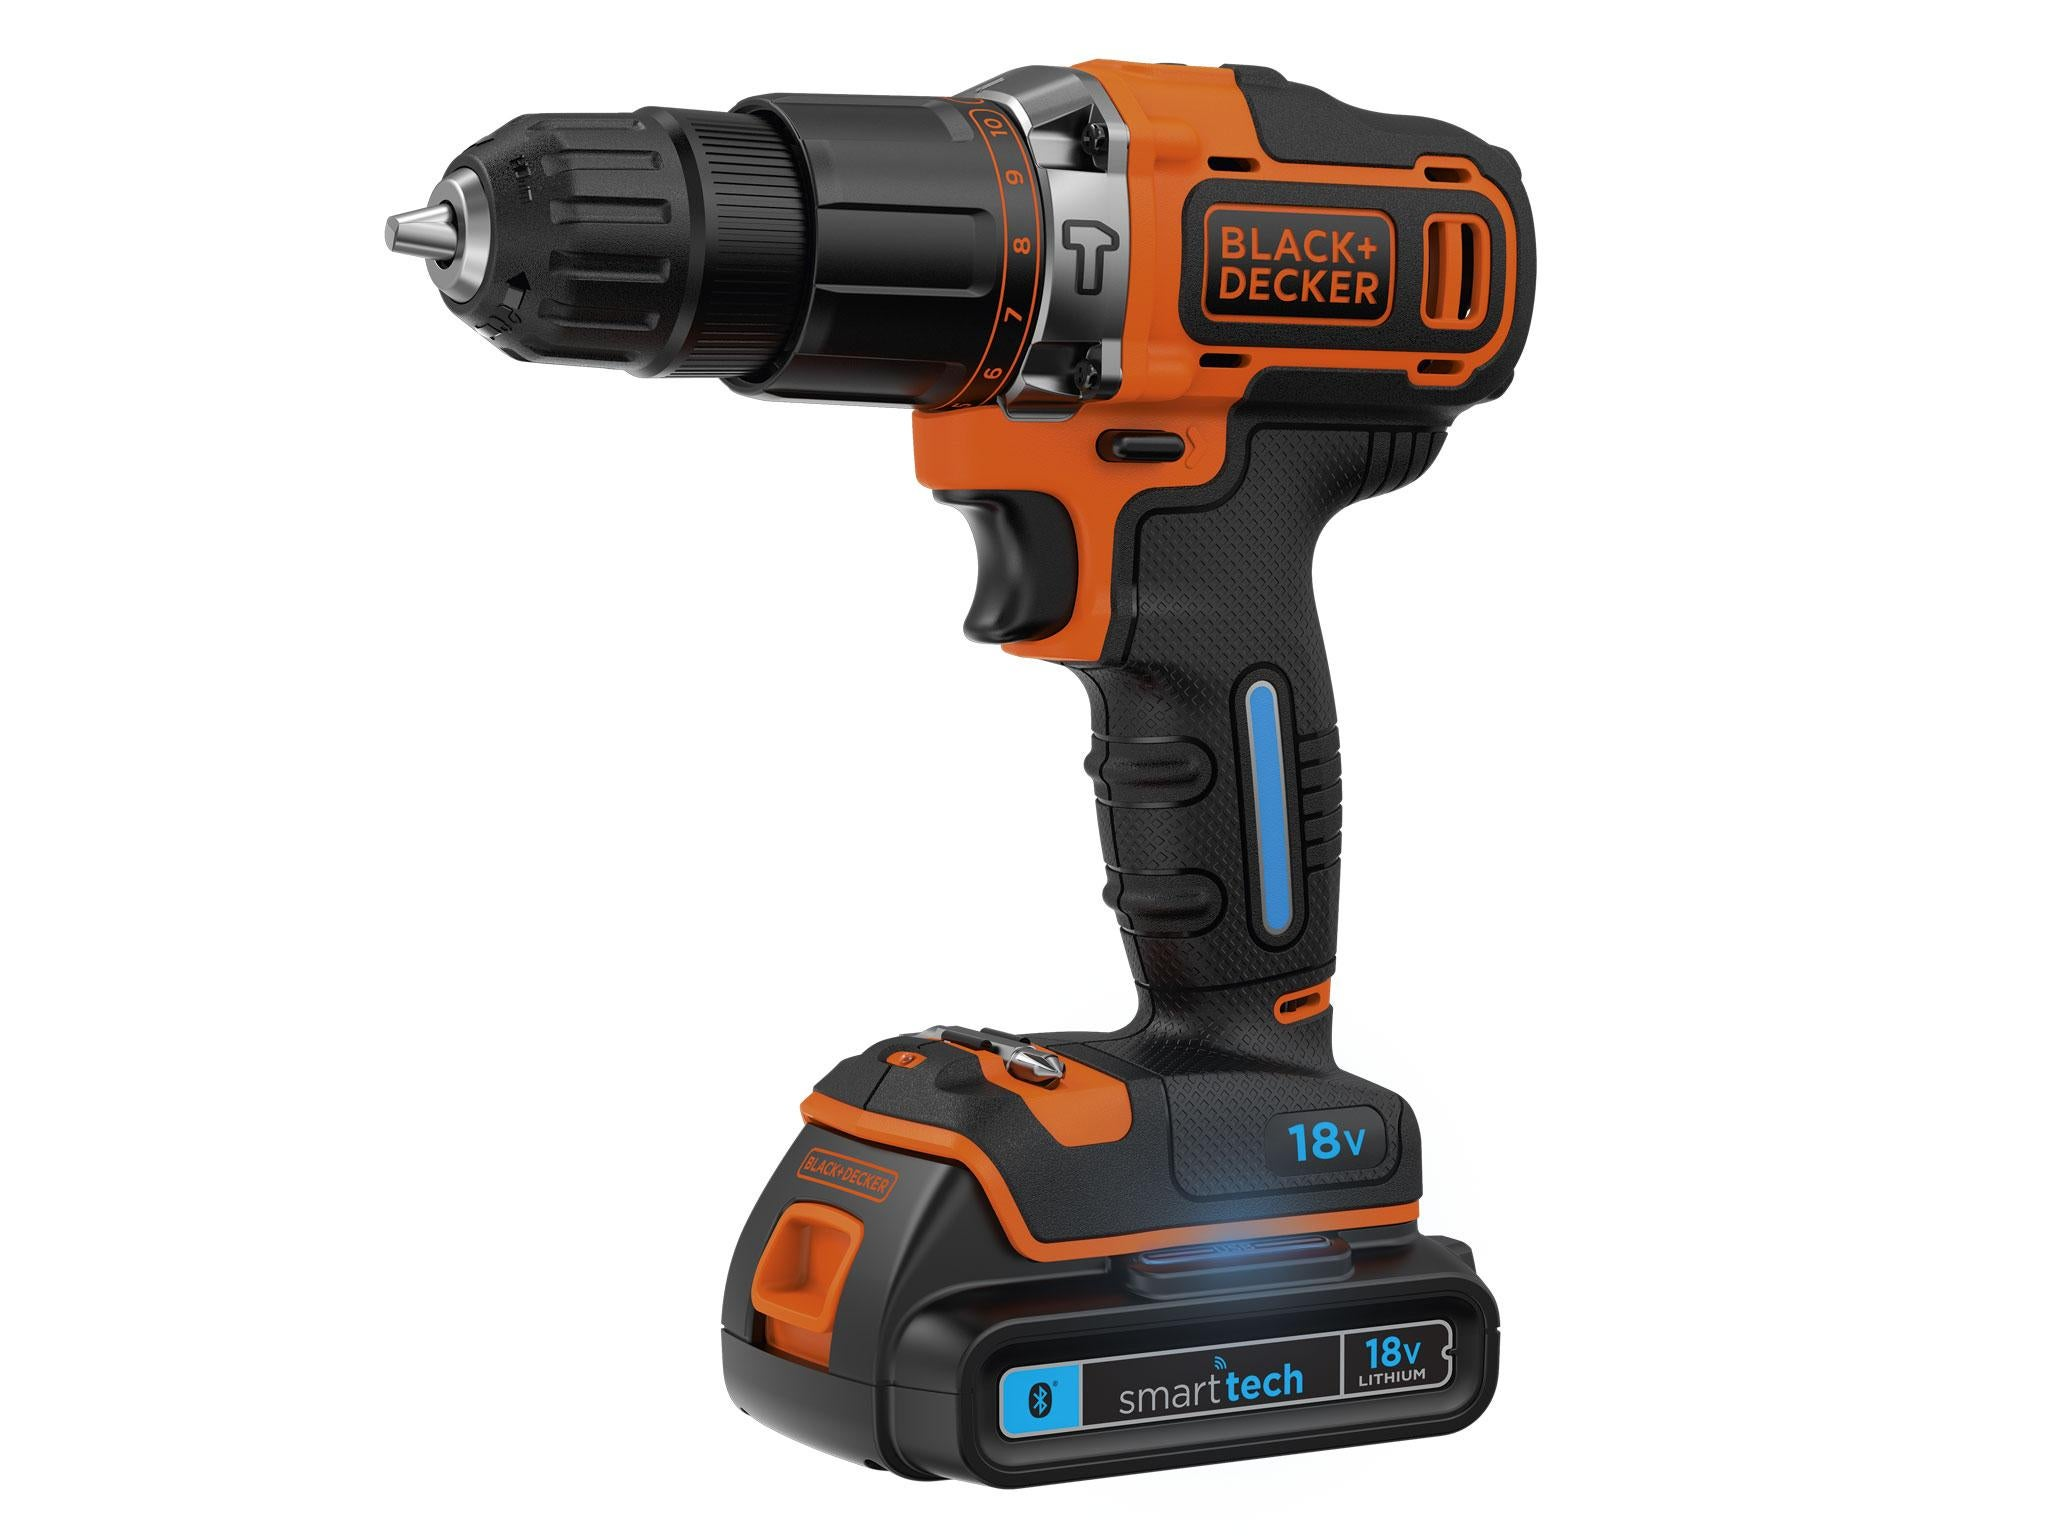 Cordless Drill: reviews, review, rating, advice on choosing 84